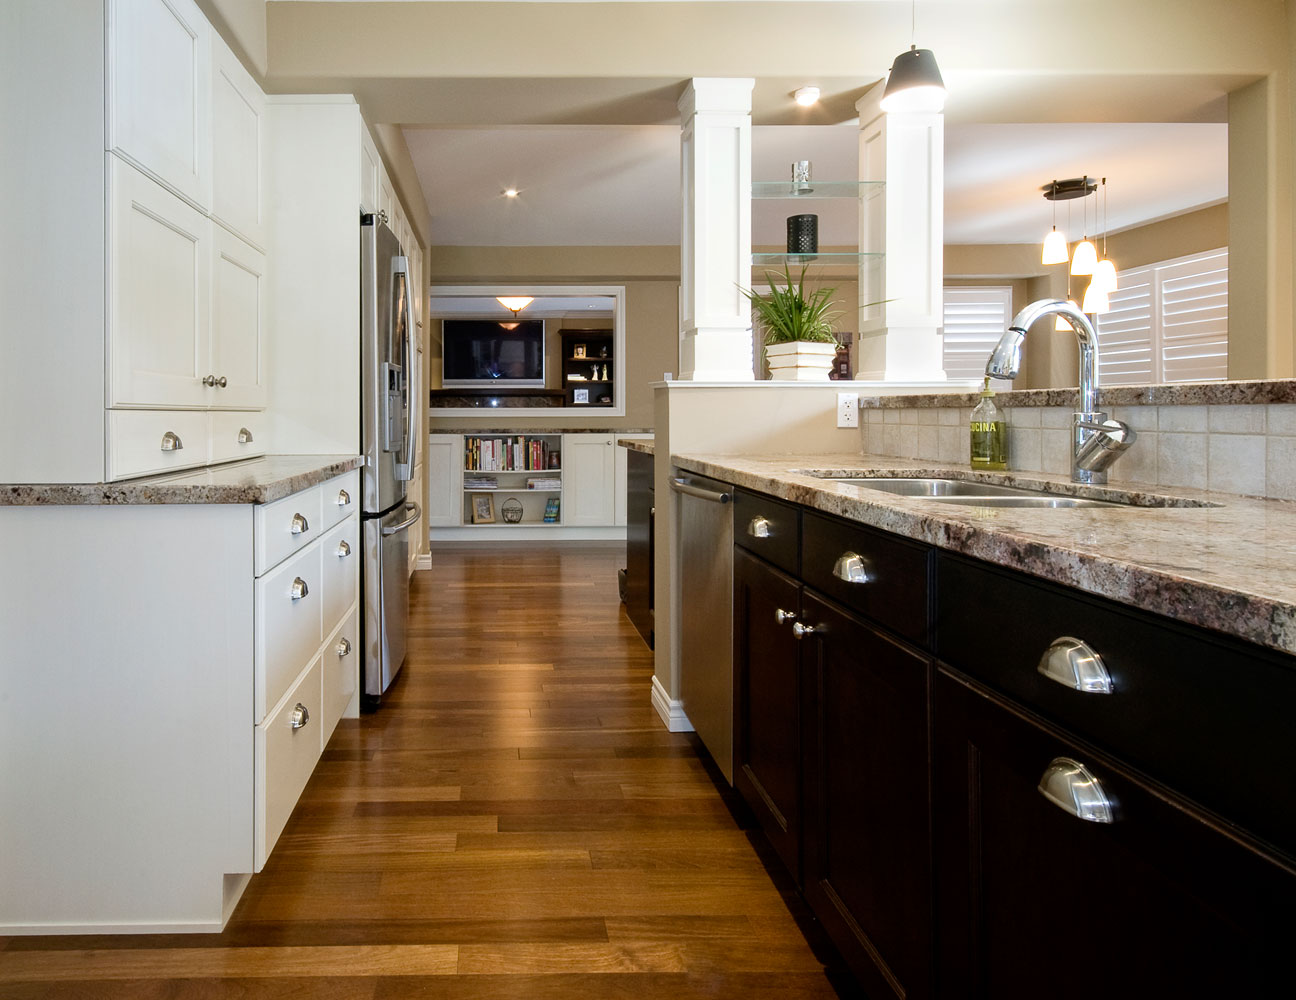 Kitchen design with white and dark wood cabinets and hardwood floors